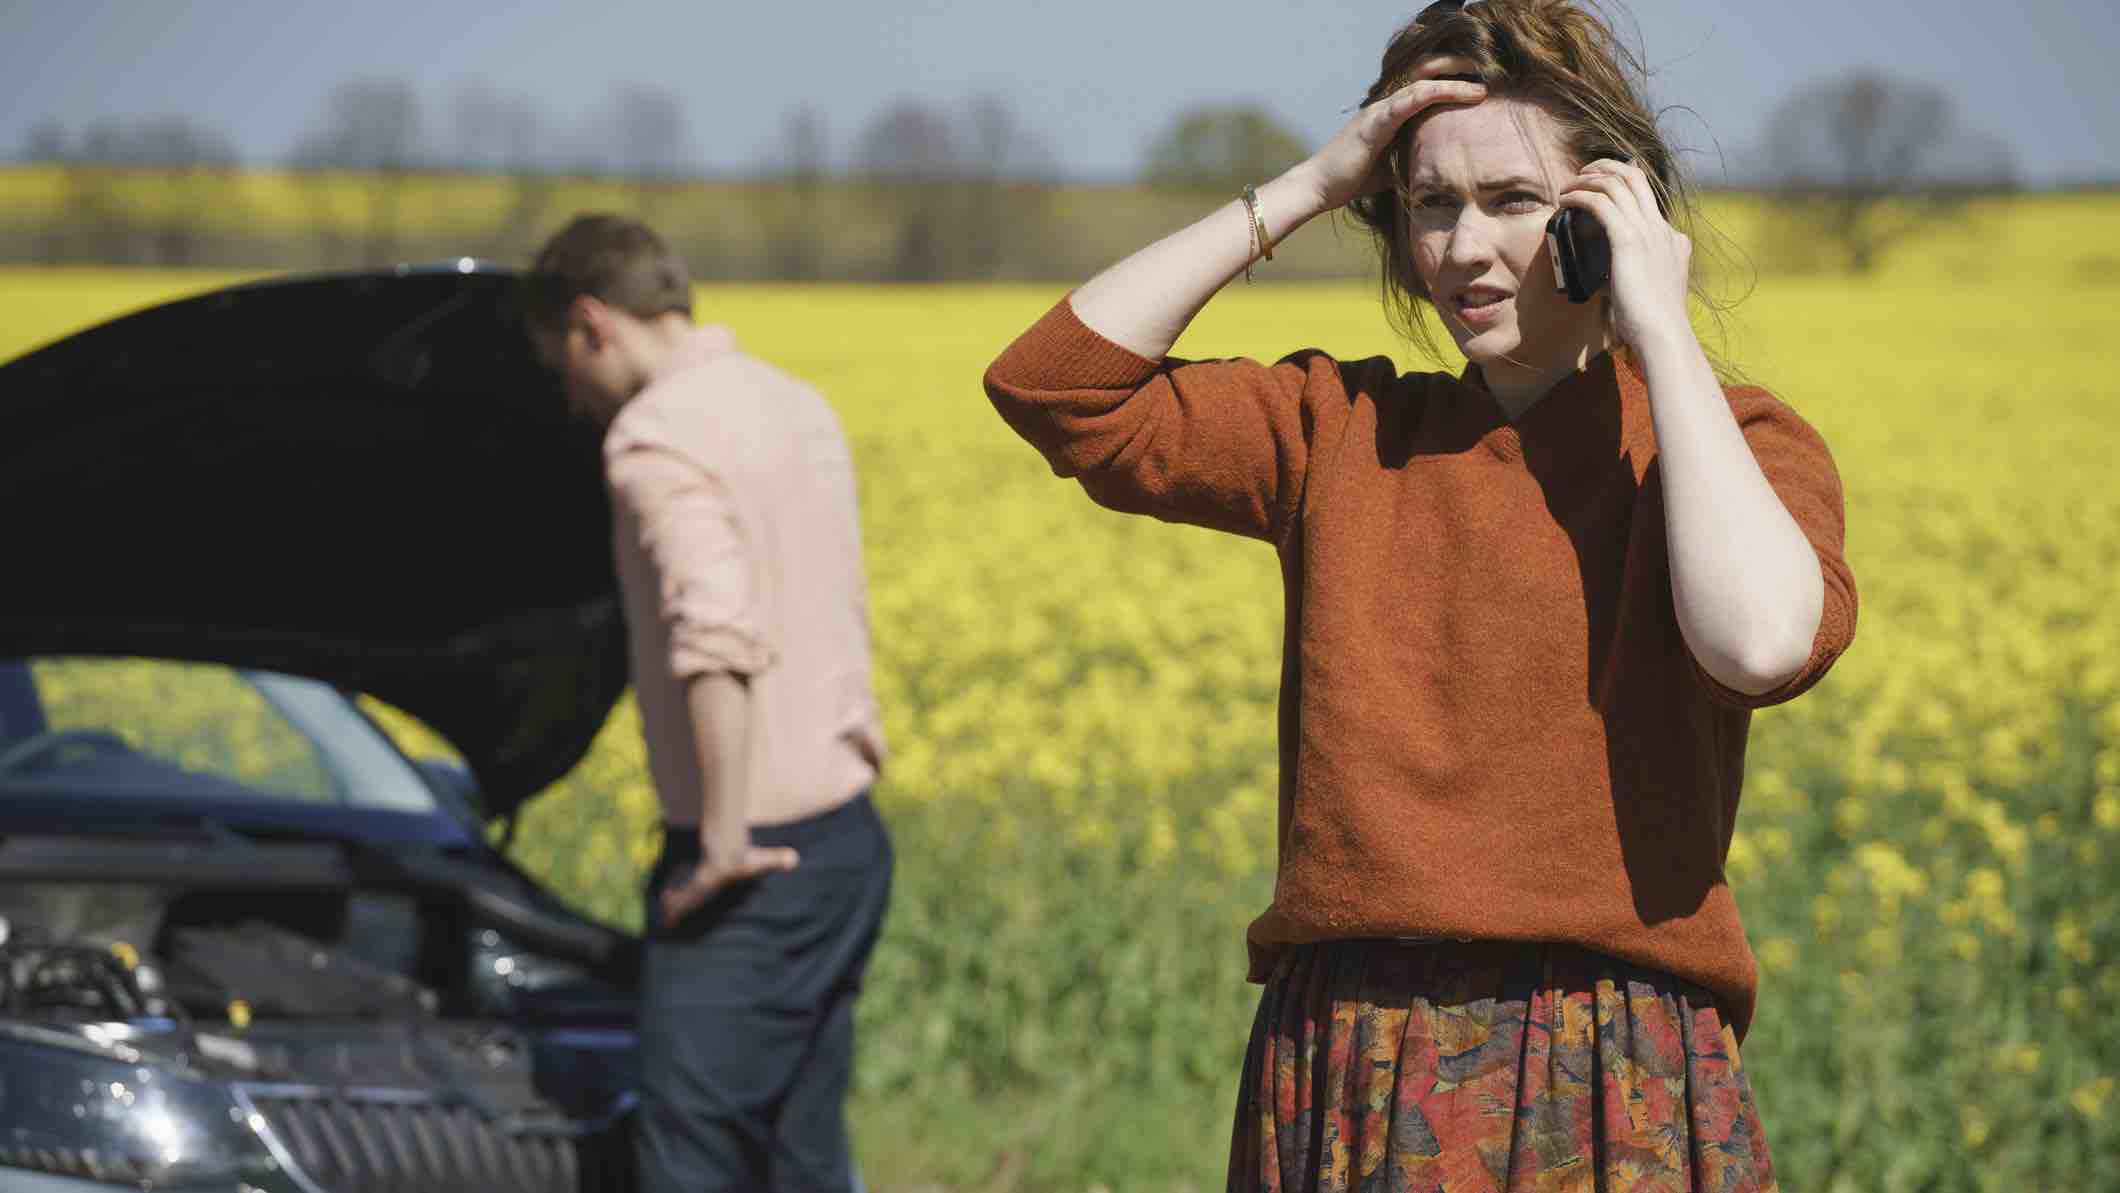 Woman on phone to insurance about written off car